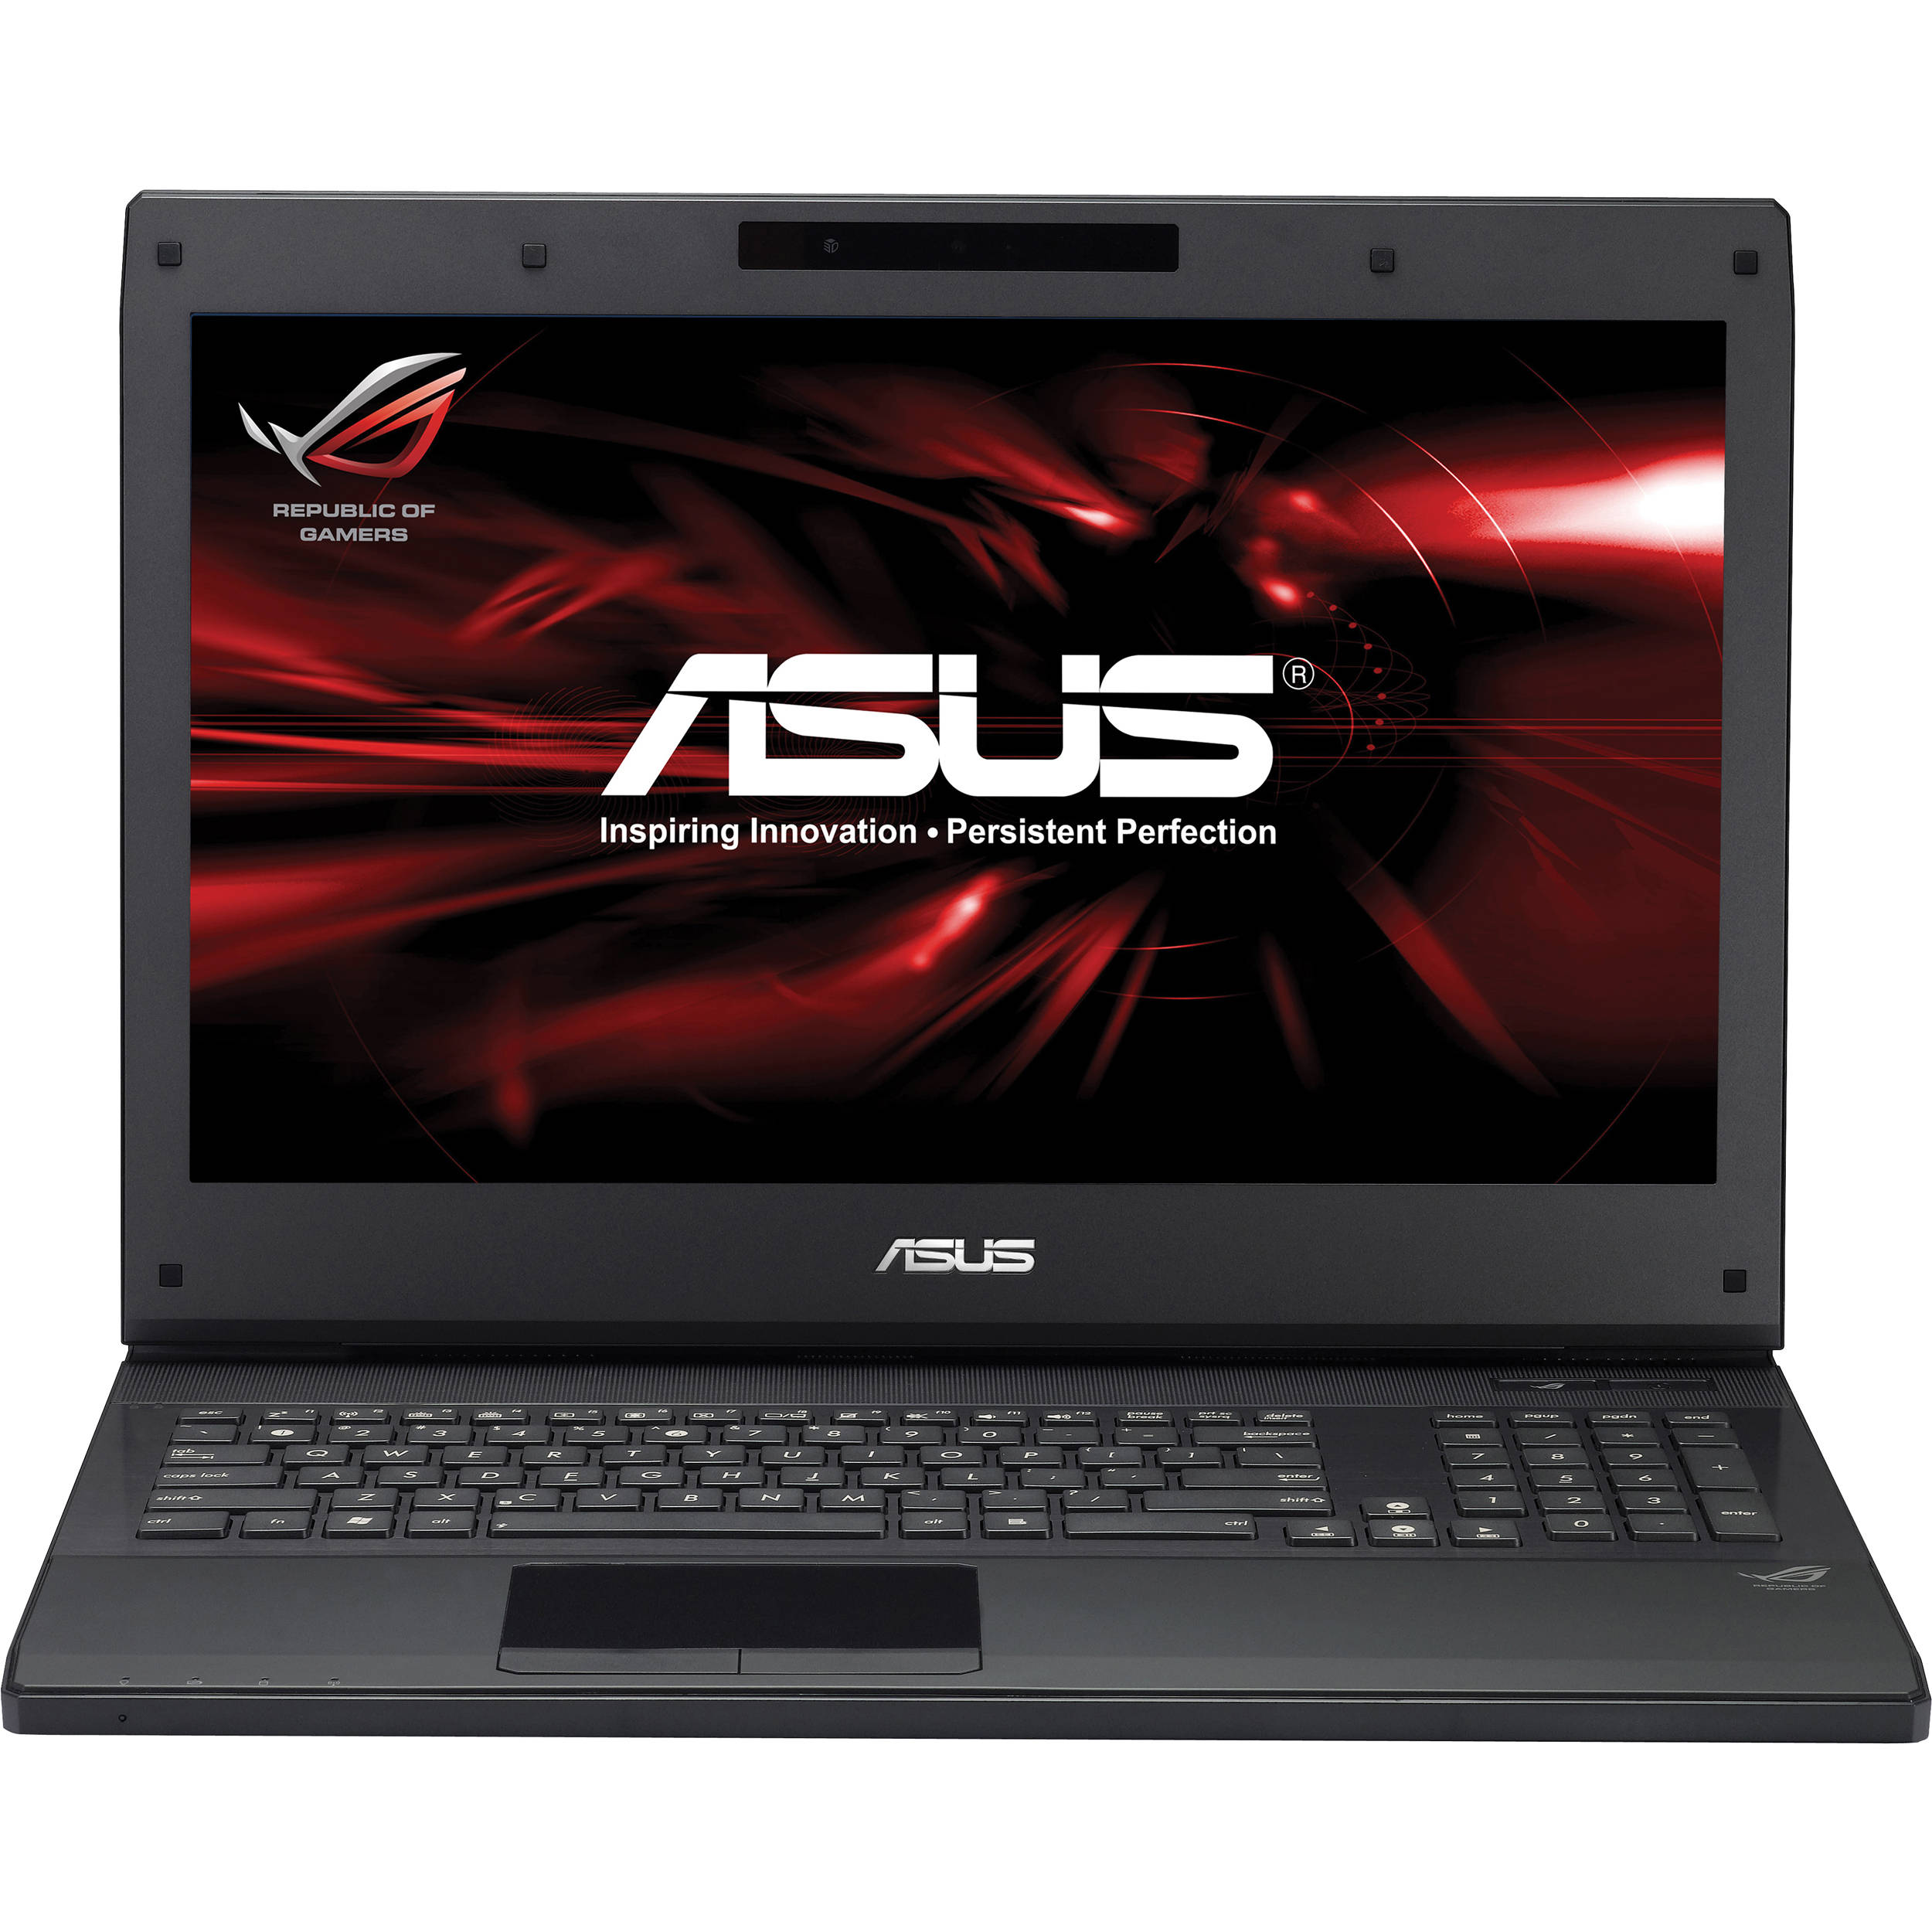 ASUS G74SX INTEL TURBO BOOST MONITOR DRIVERS DOWNLOAD